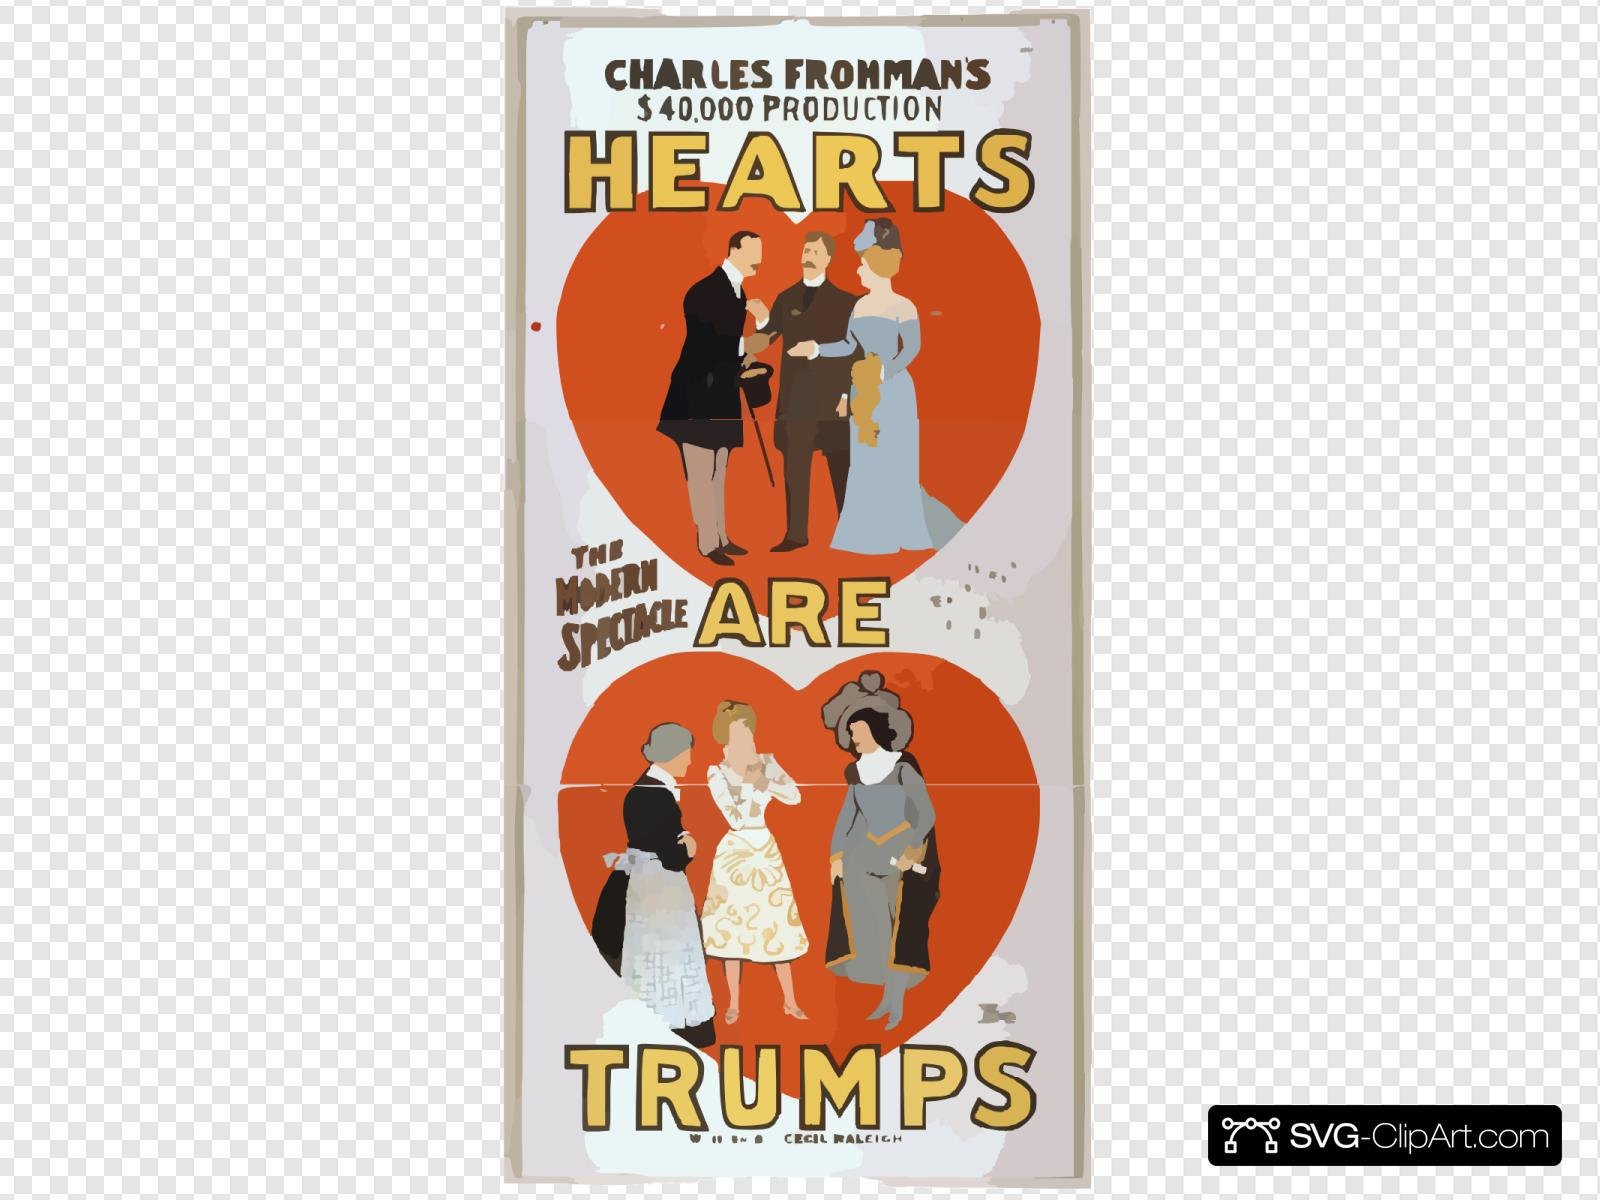 Charles Frohman S $40,000 Production, Hearts Are Trumps Written By Cecil Raleigh ; A Modern Spectacle Presented As Produced By Arthur Collins At The Theatre Royal, Drury Lane, London.